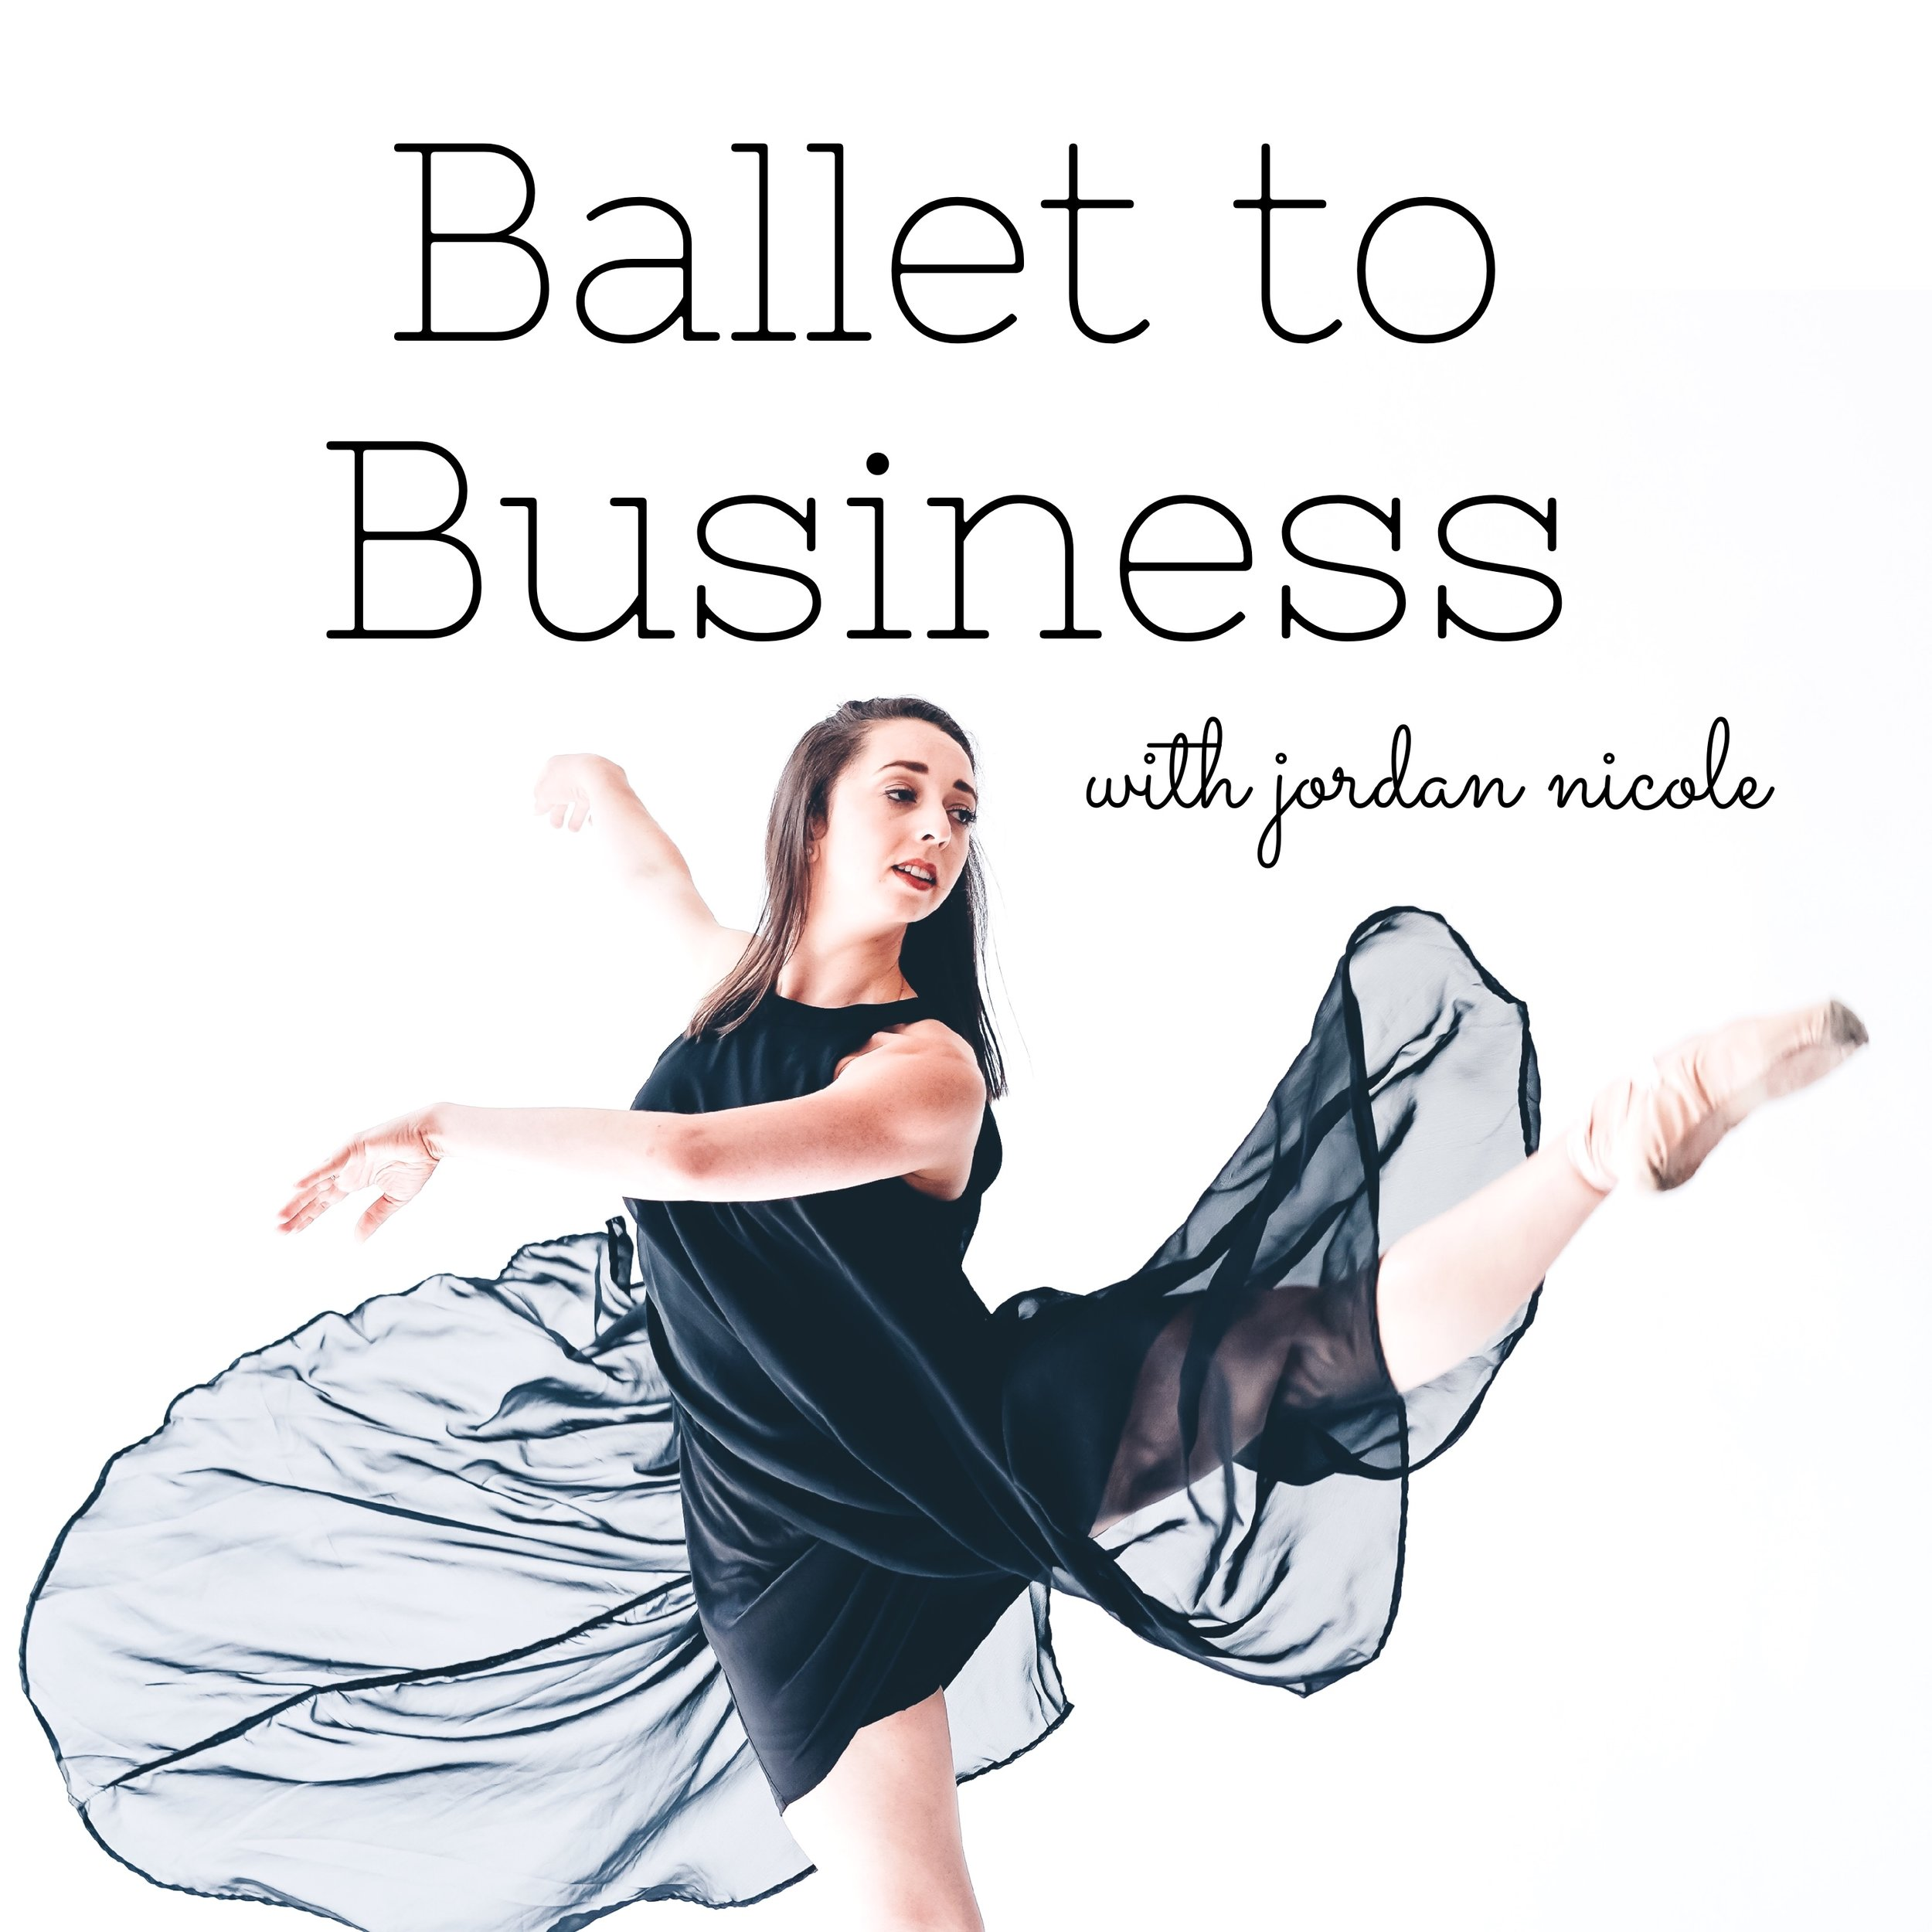 - And here we are! After conducting my first interview in May & continuing to interview over 20 guests in the next 3 months, on August 6th, 2019, Ballet to Business hit the airwaves :)